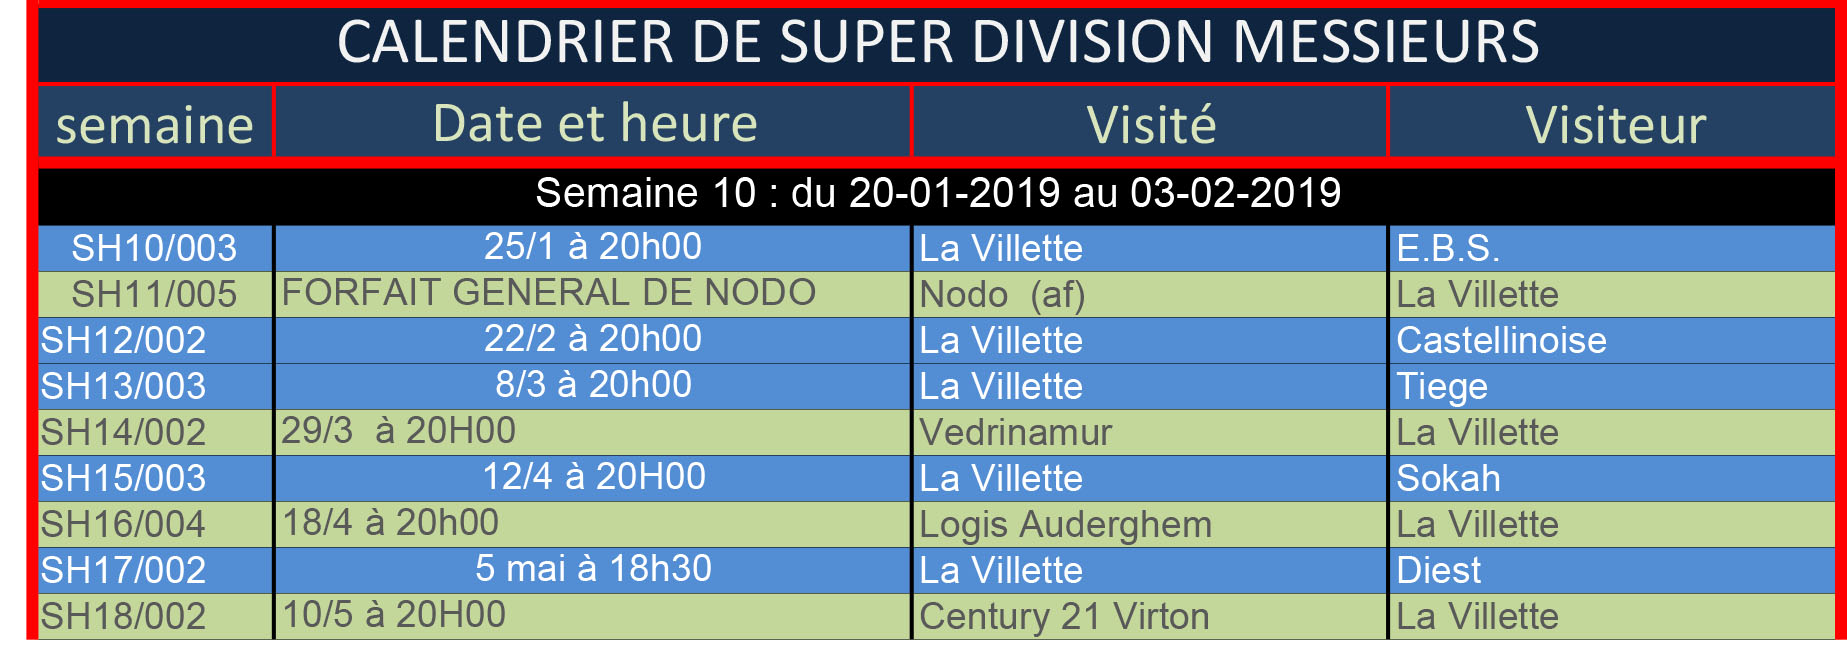 Calendrier second tour Super division hommes